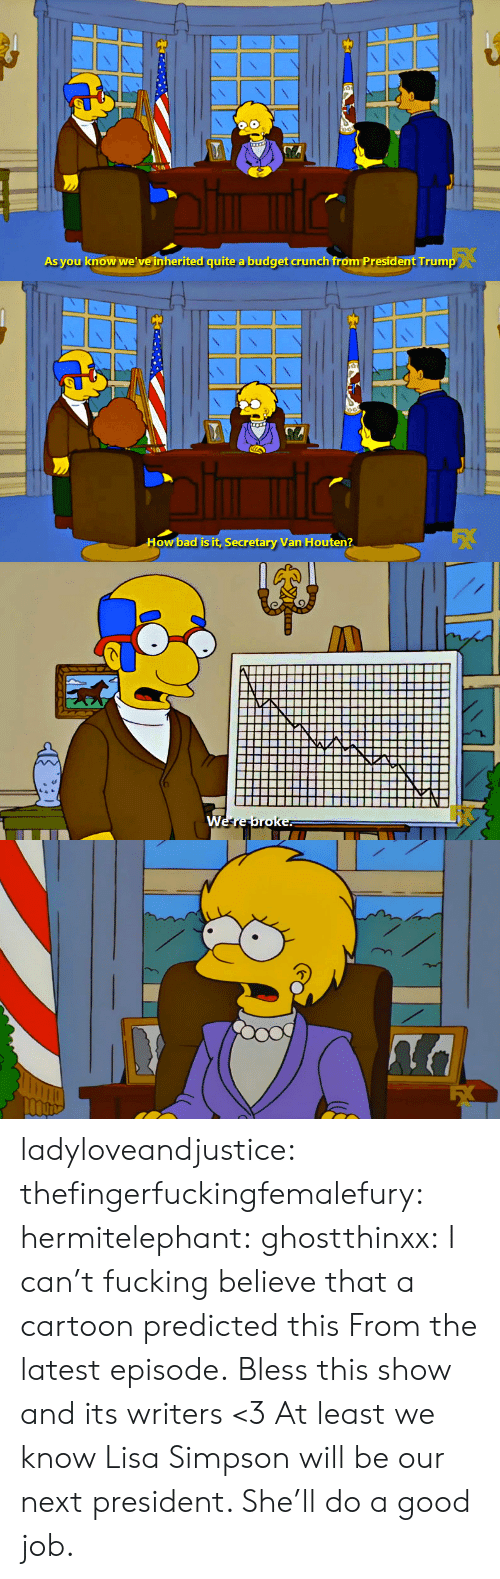 Lisa Simpson: As you know we' ve inherited quite a budget crunch froóm President Trump   How bad is it, Secretary Van Houten? ladyloveandjustice:  thefingerfuckingfemalefury:  hermitelephant:  ghostthinxx:  I can't fucking believe that a cartoon predicted this   From the latest episode.  Bless this show and its writers <3  At least we know Lisa Simpson will be our next president. She'll do a good job.